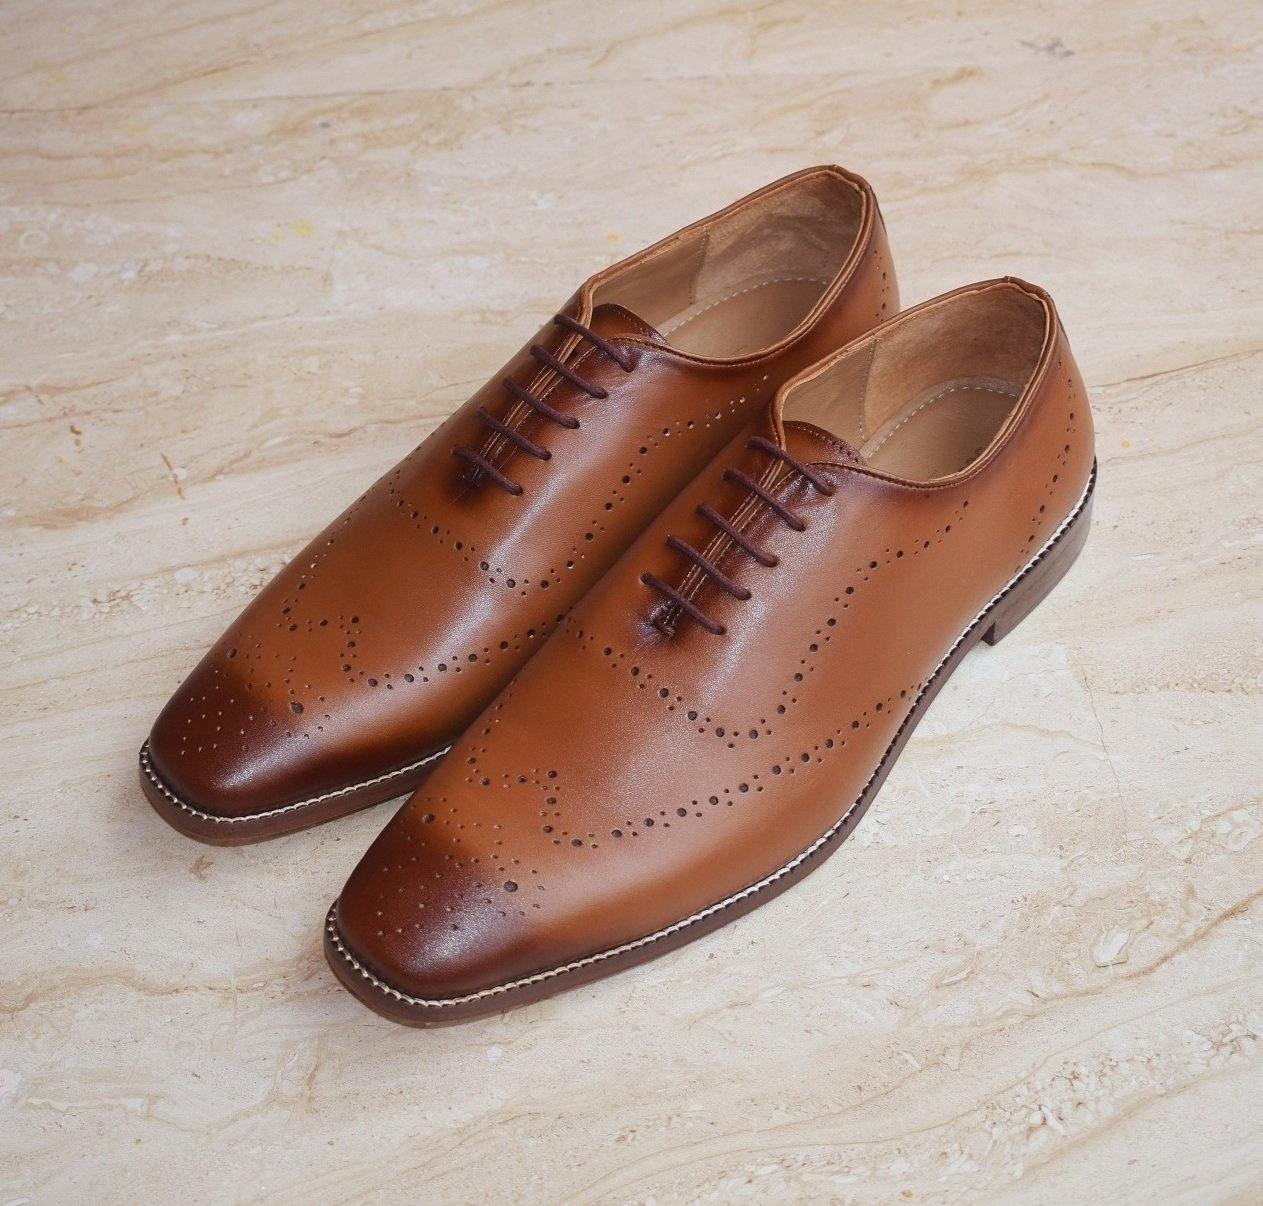 SeeandWear Luxury Designer Brogue Shoes for Men - SeeandWear